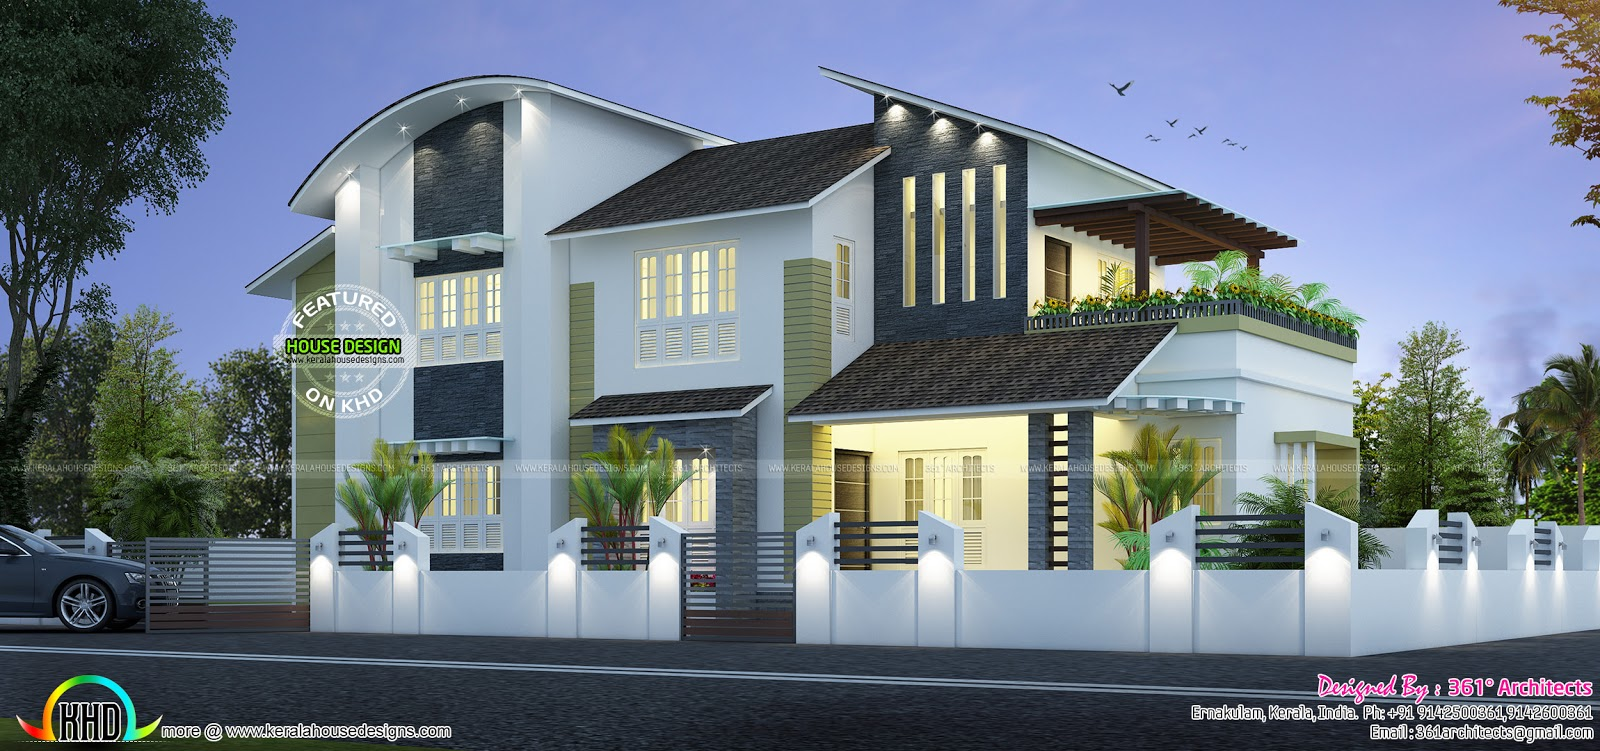 New modern house 35 lakhs kerala home design and floor plans for New contemporary houses